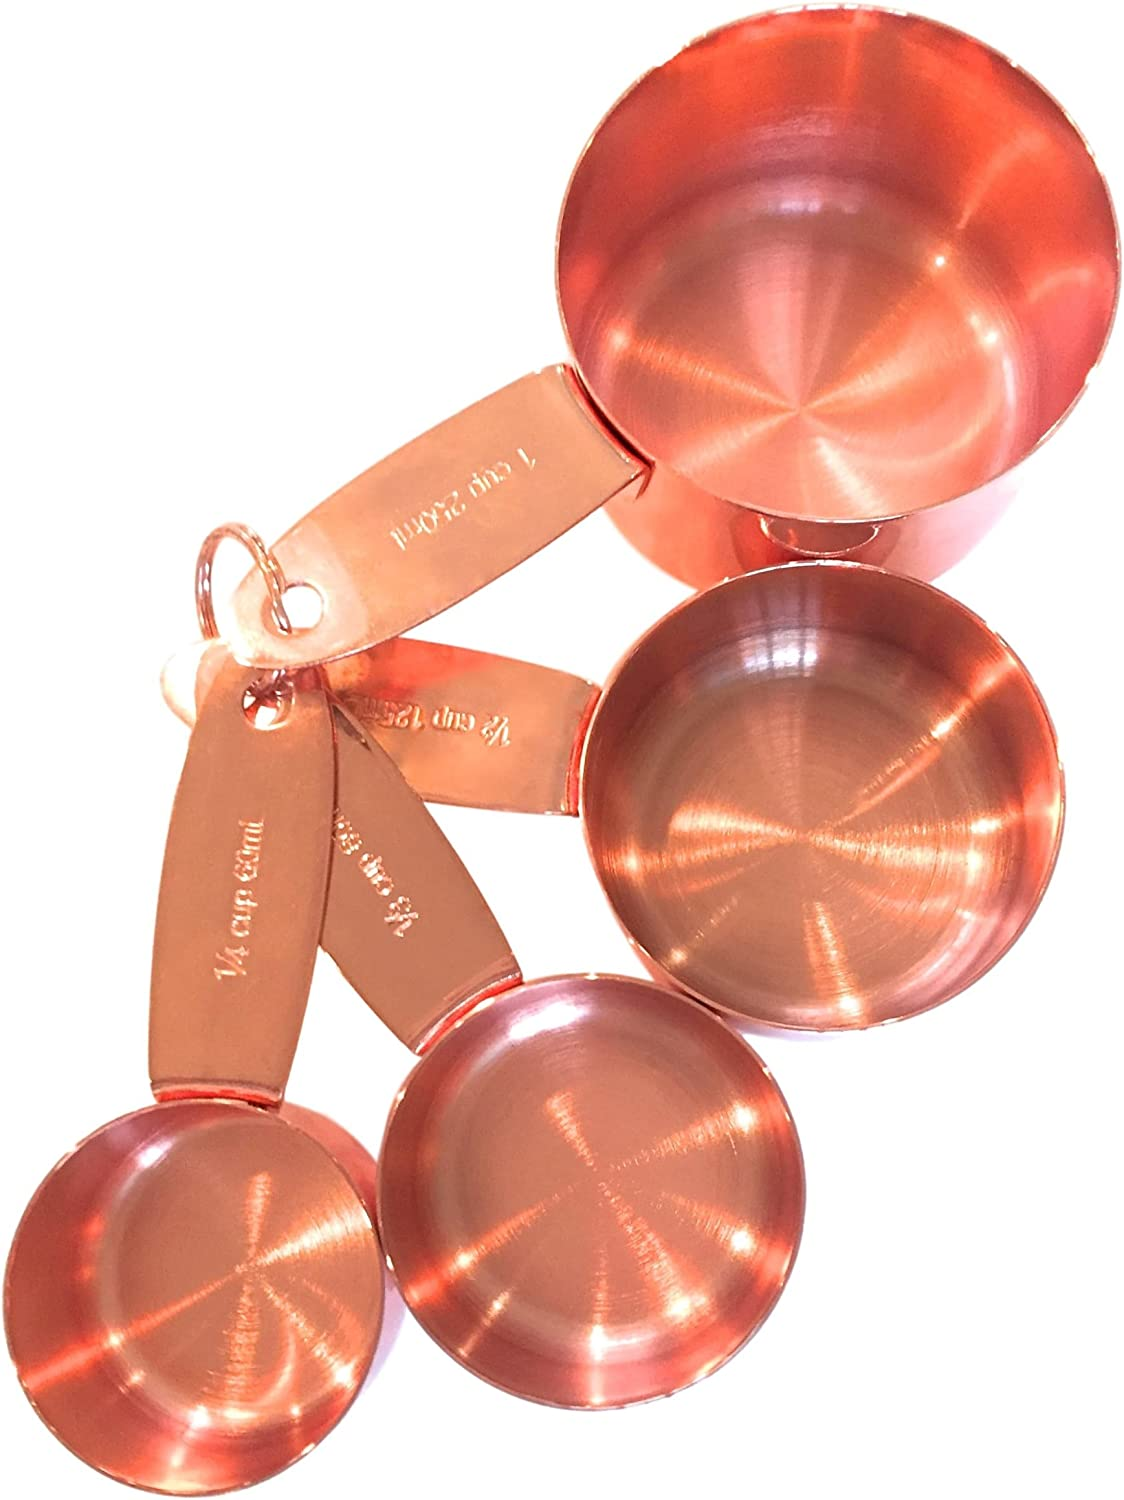 Superior Strength /& Beautiful Finish Cooking Tools Comes Attractively Boxed Unique Accessories Baking Supplies Copper Measuring Spoons For Your Rustic /& Farmhouse Kitchen Decor A Lovely Gift